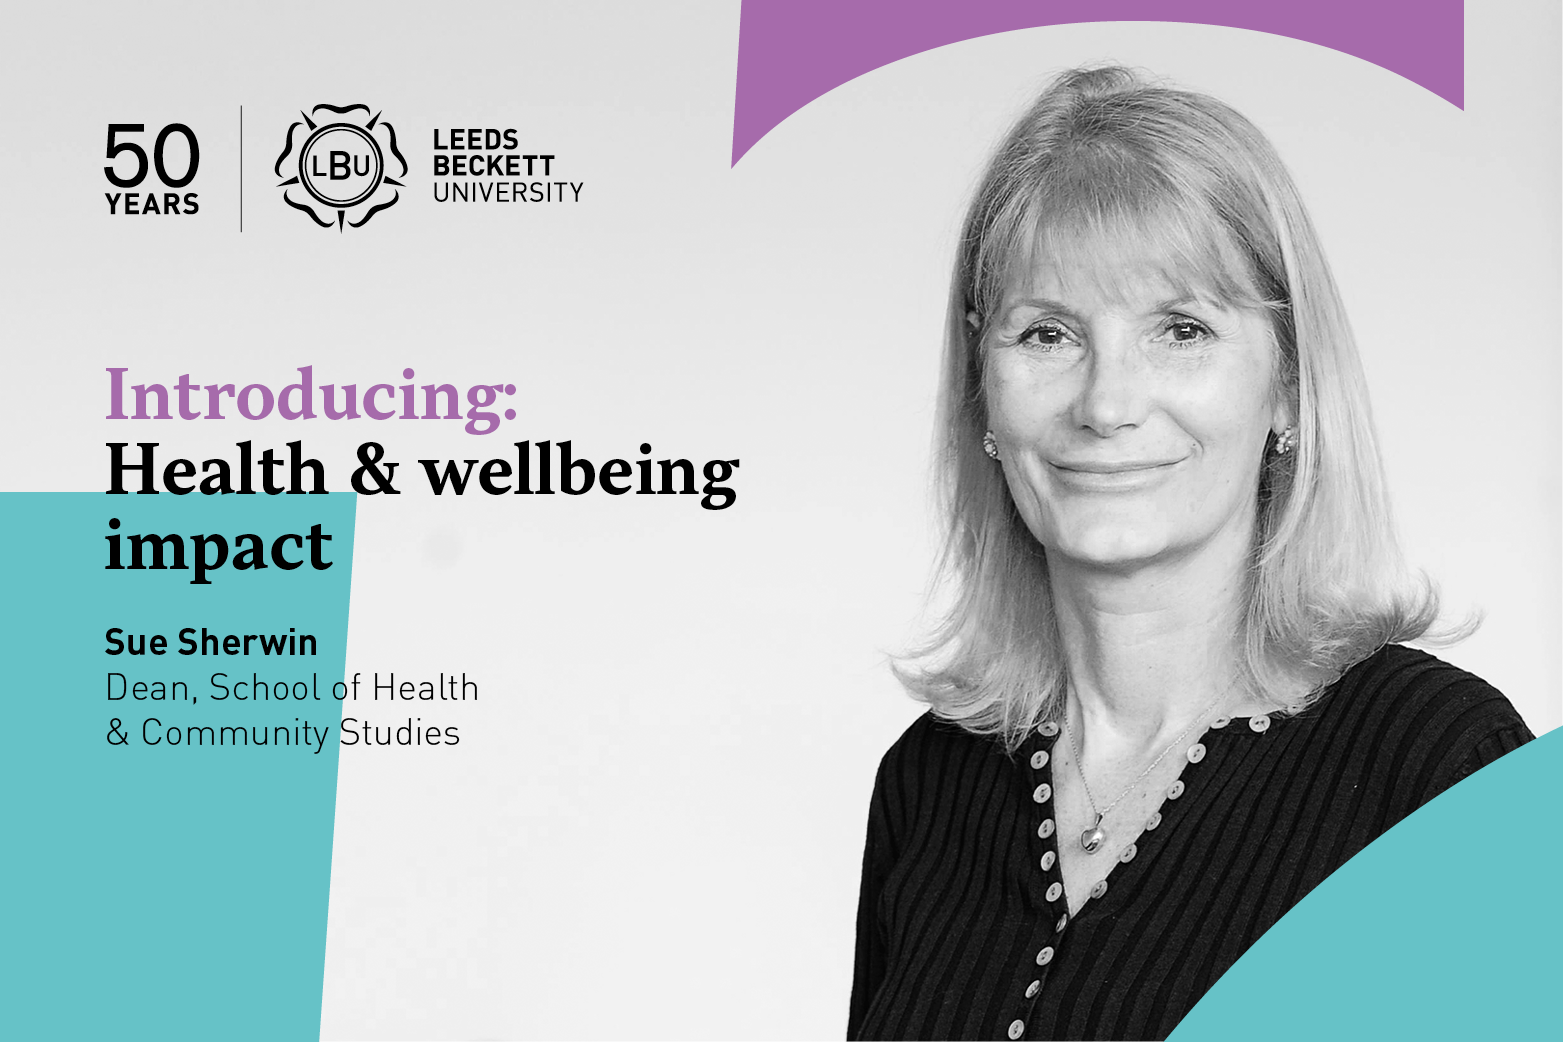 Introducing Health and wellbeing impact